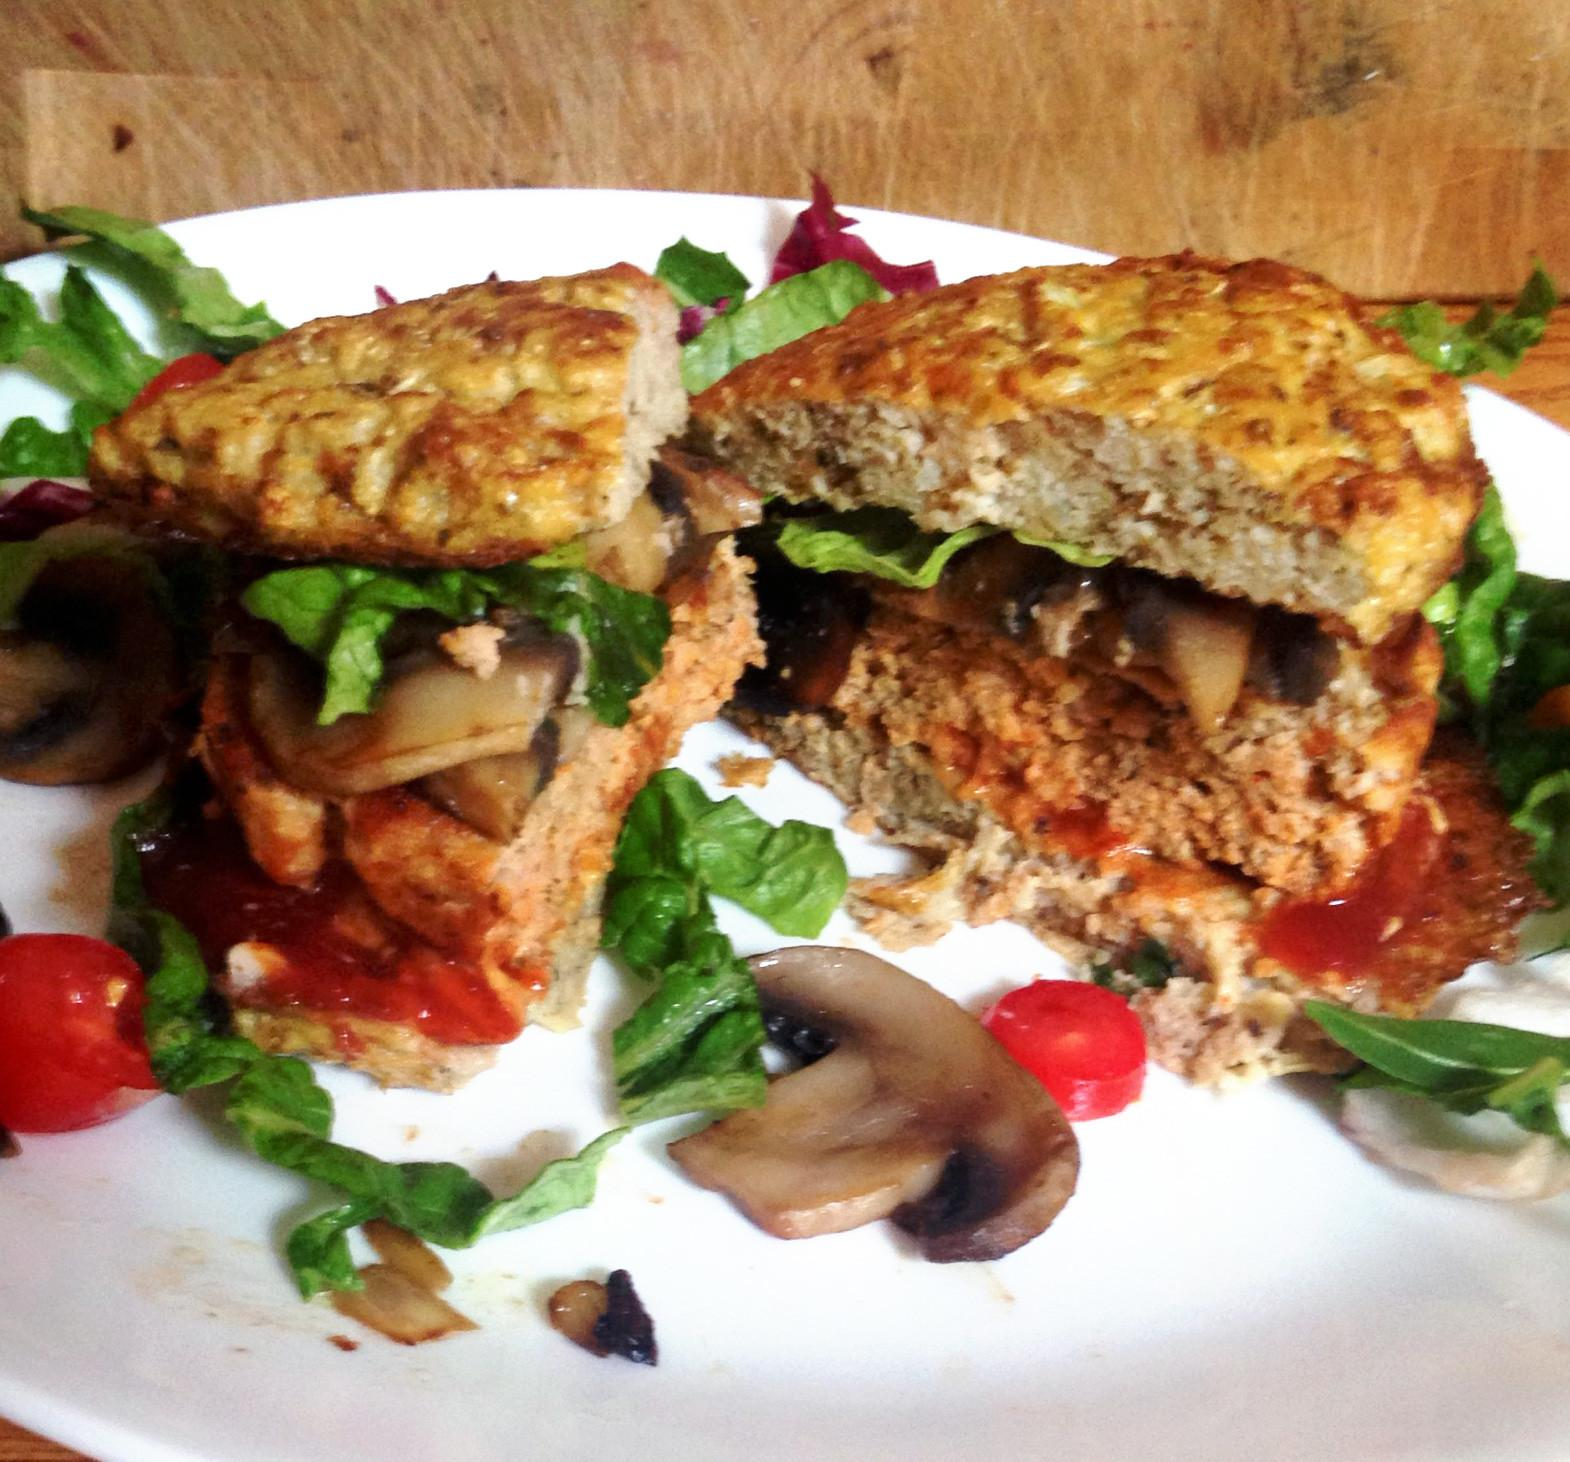 Live Right Healthy Homemade Turkey Burgers